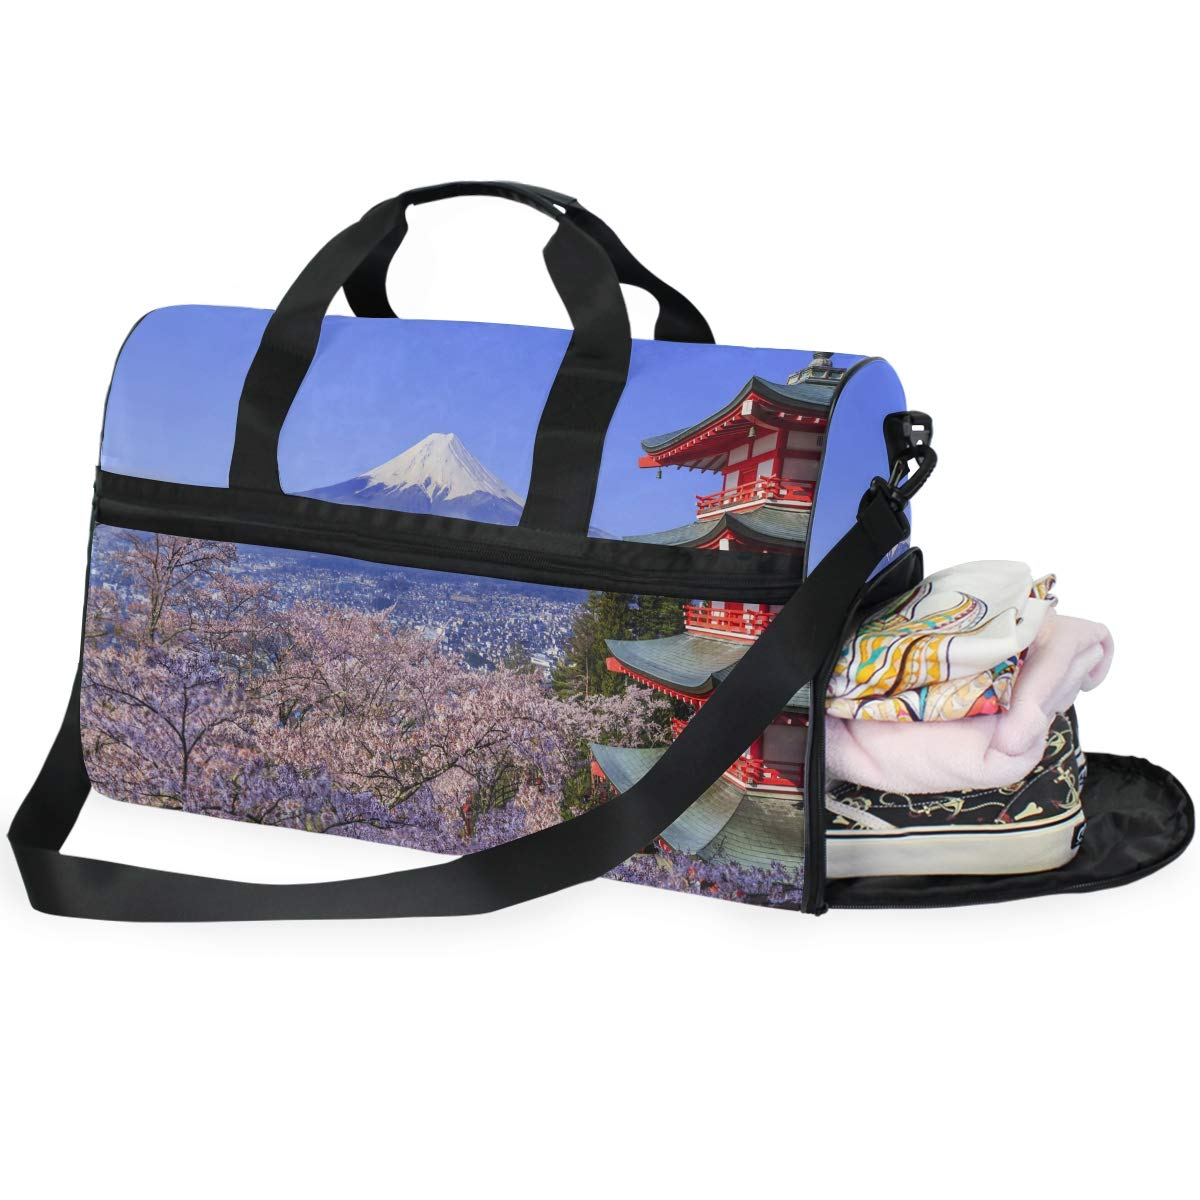 Hippie Flower Large Canvas shoulder bag with Shoe Compartment Travel Tote Luggage Weekender Duffle Bag